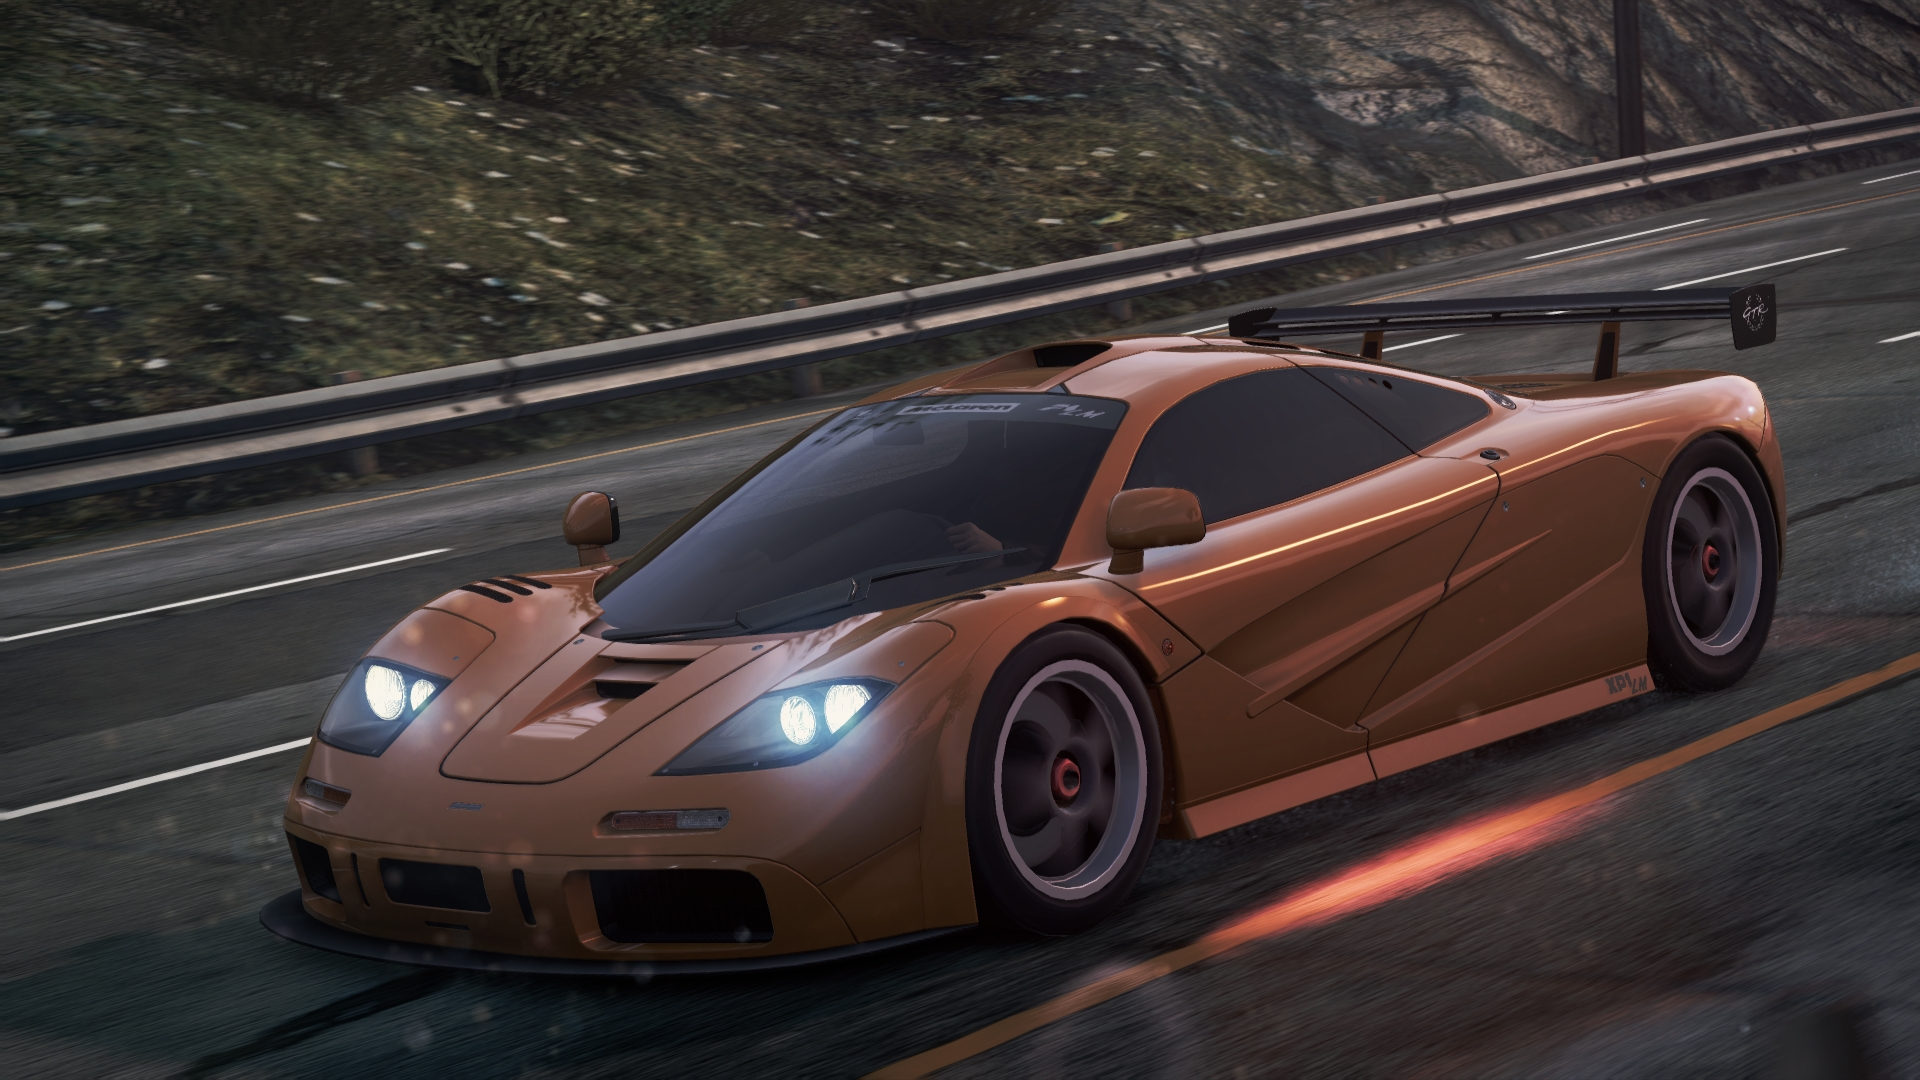 Mclaren F1 Lm Need For Speed Wiki Fandom